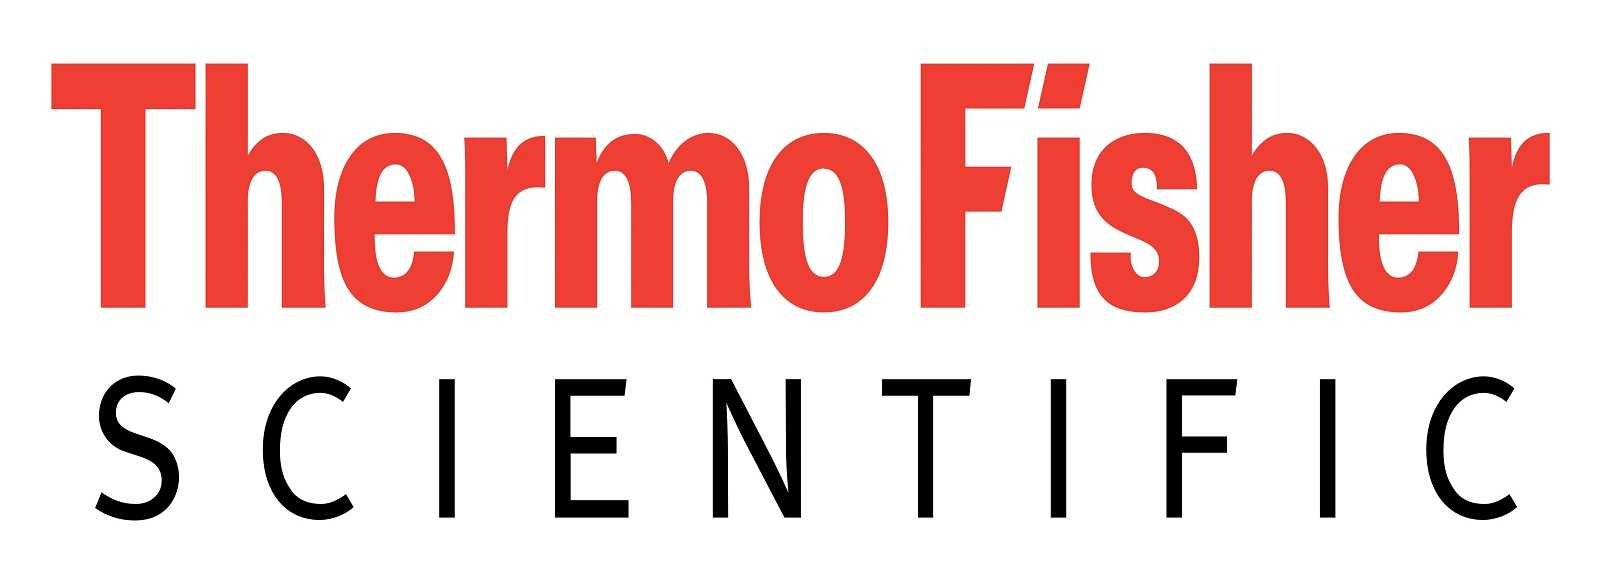 PNGPIX COM Thermo Fisher Scientific Logo PNG Transparent - ترمو فیشر